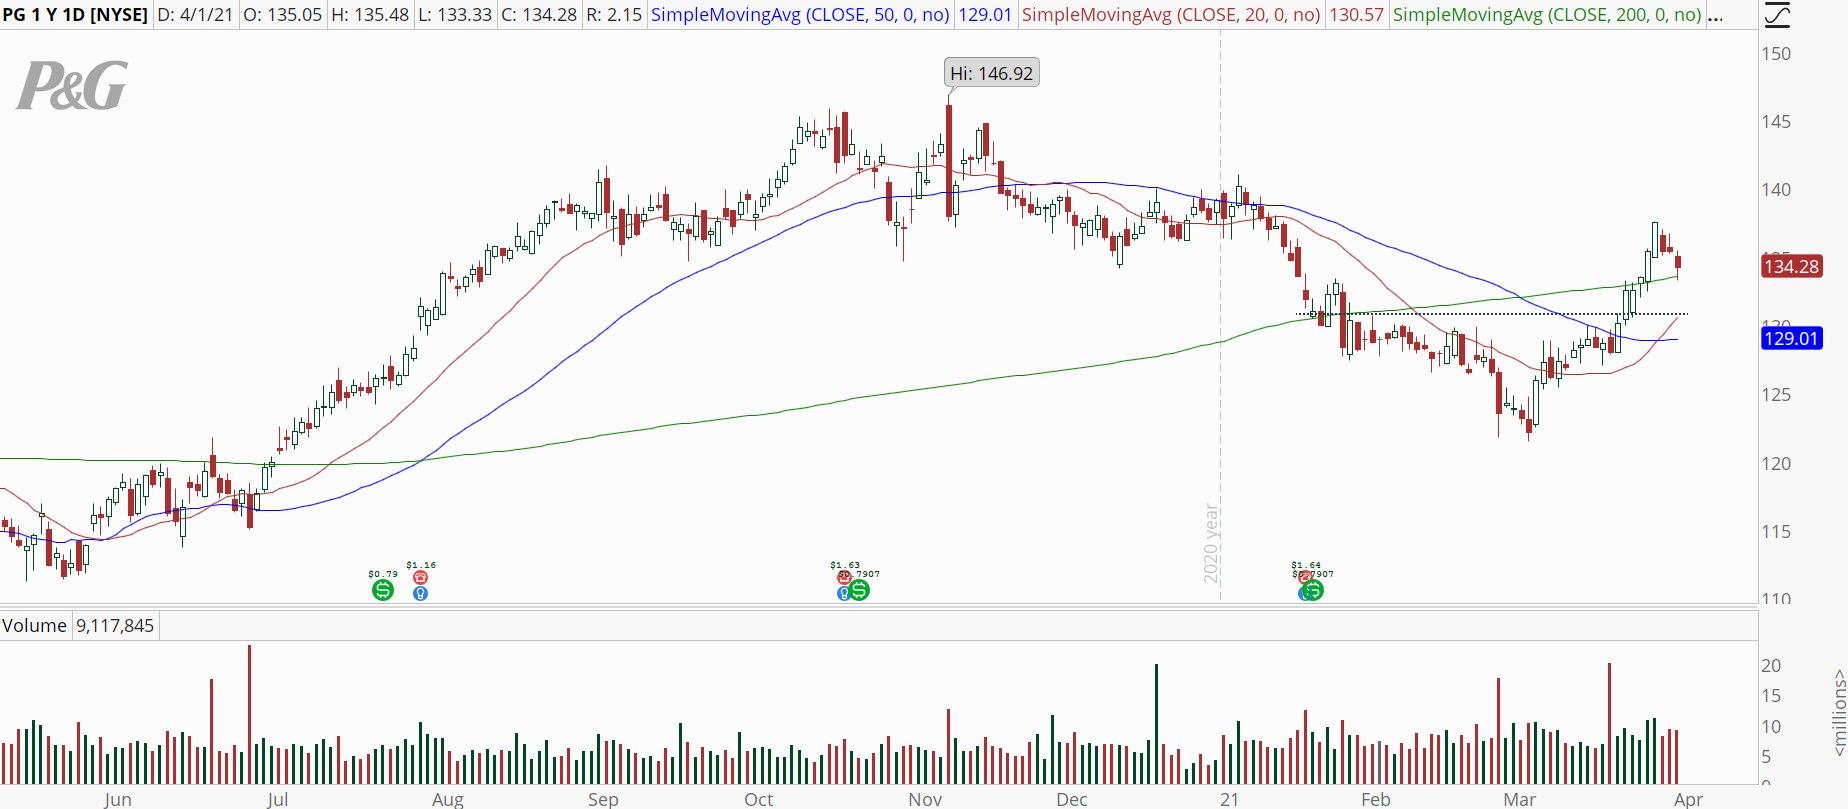 Proctor & Gamble (PG) stock chart with bull retracement